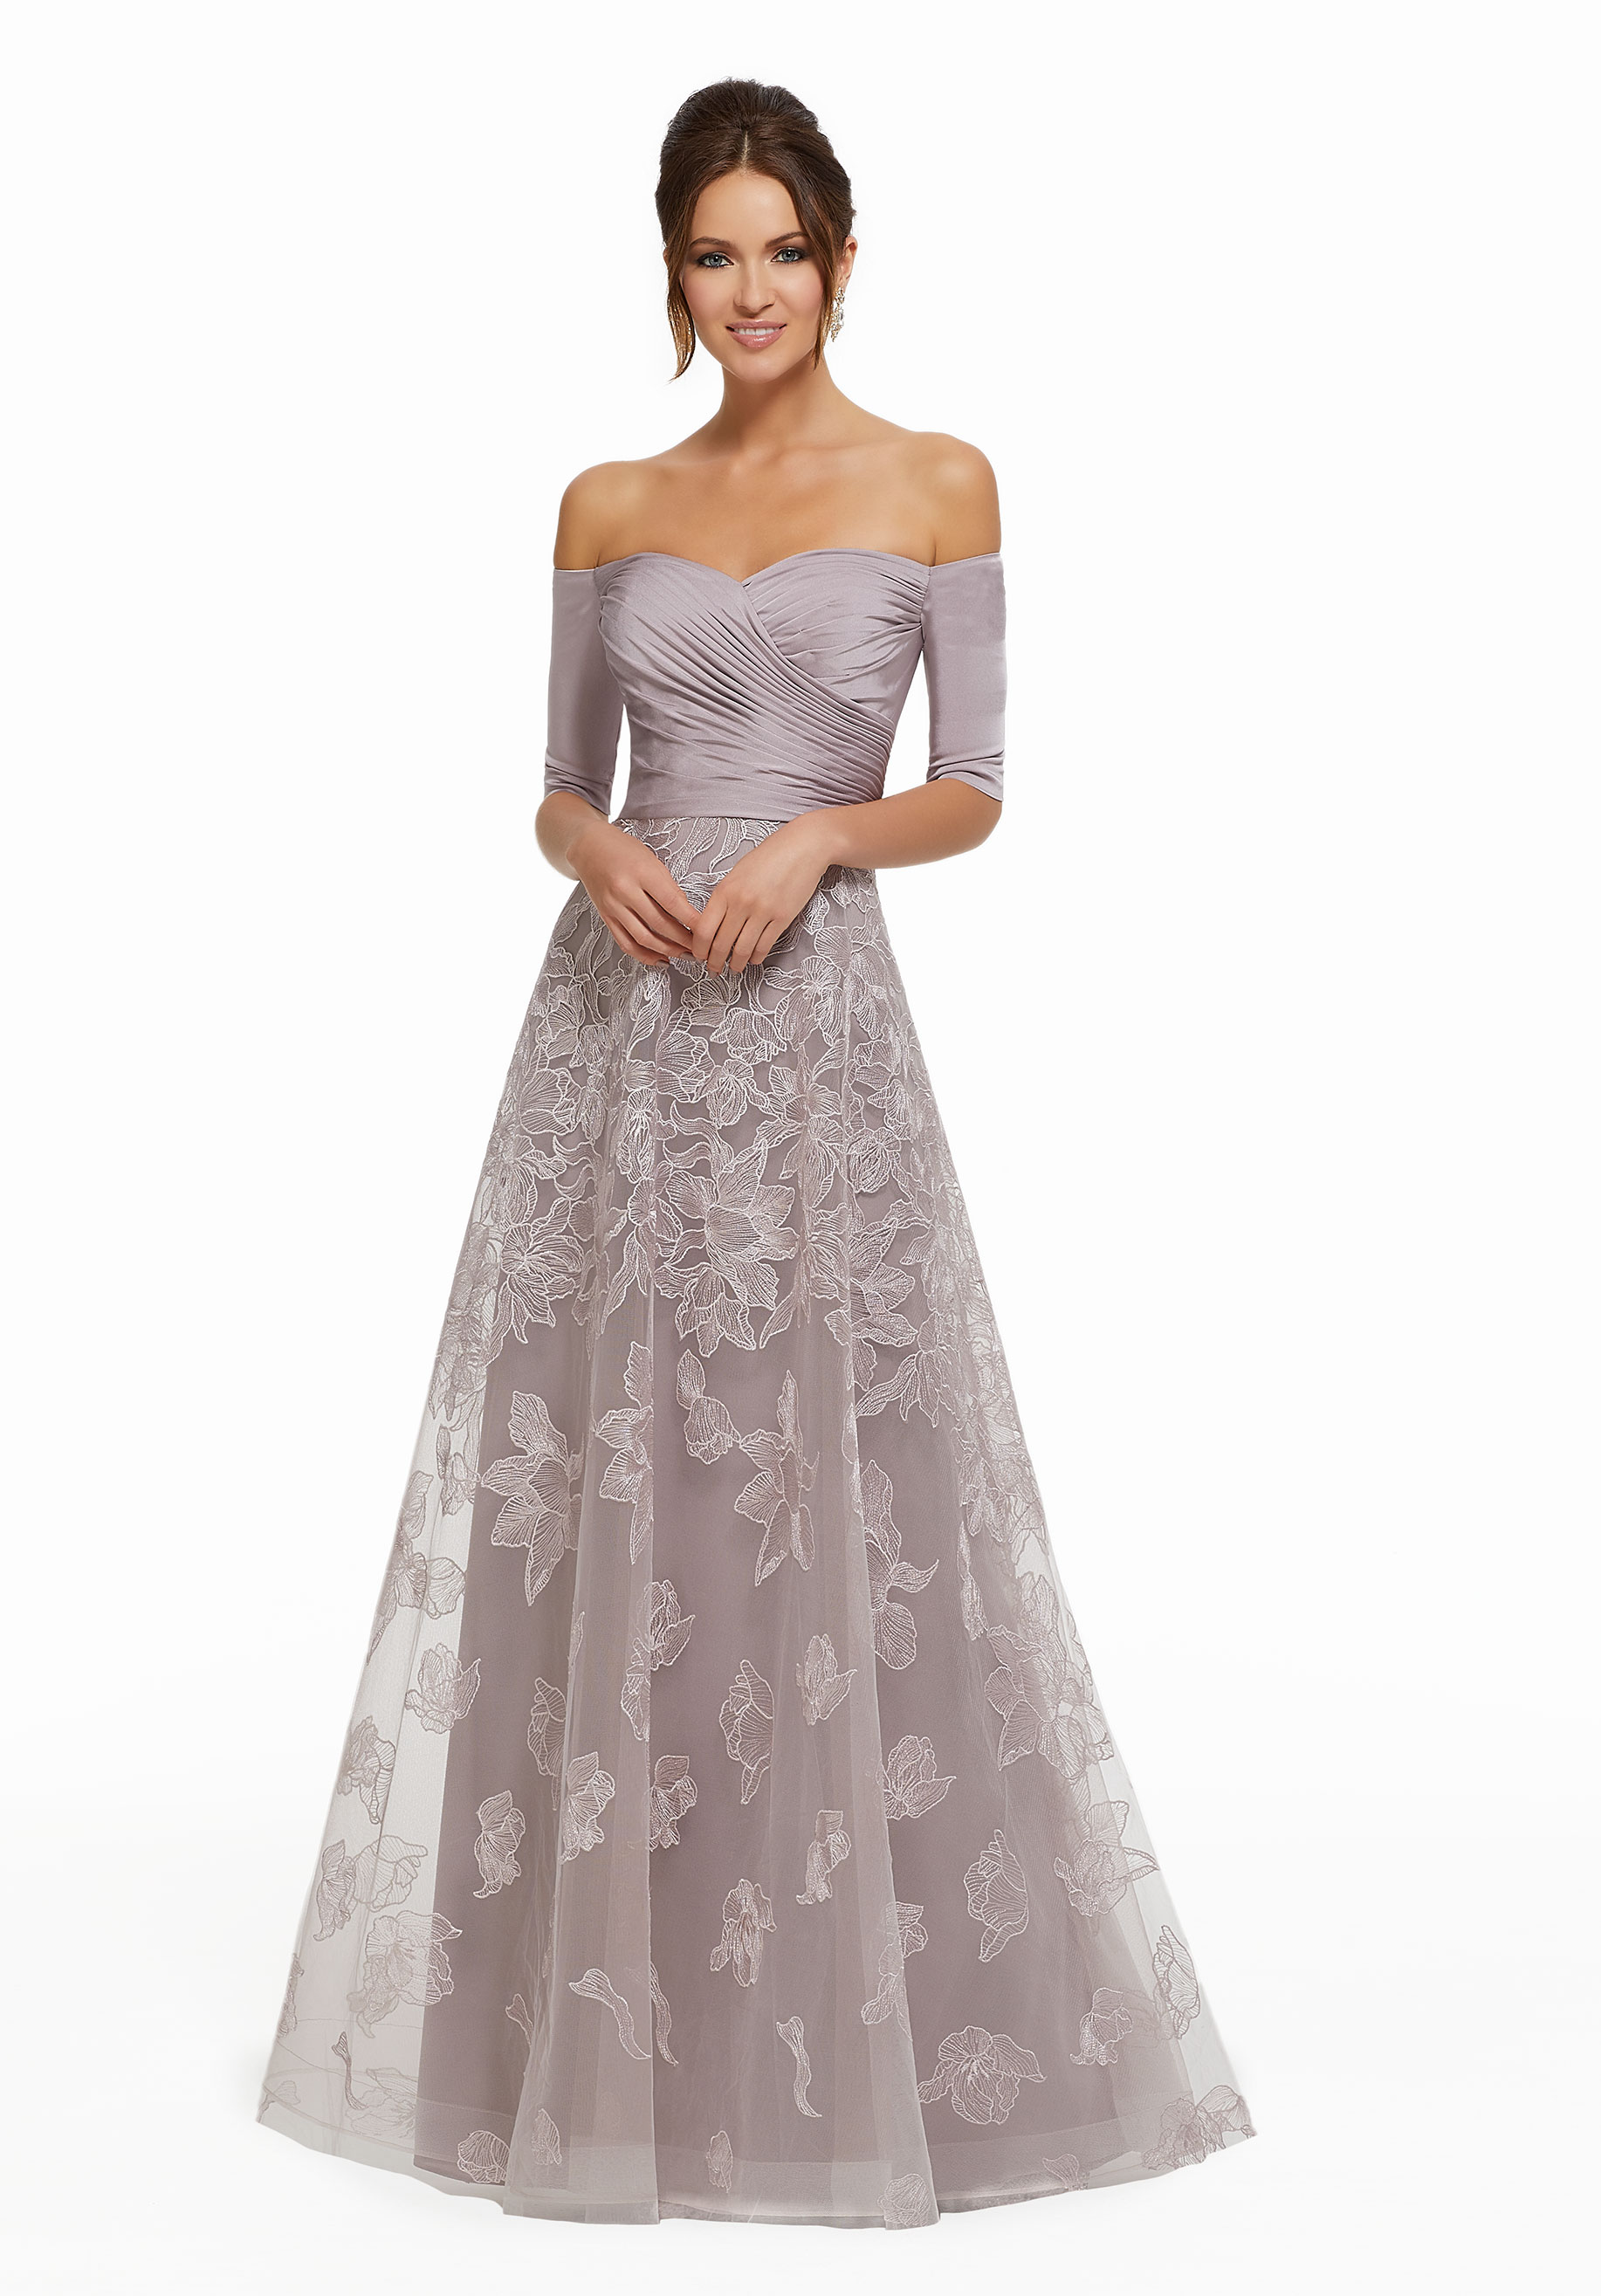 Mother Of The Bride/Groom Dresses - Bridals By Lori